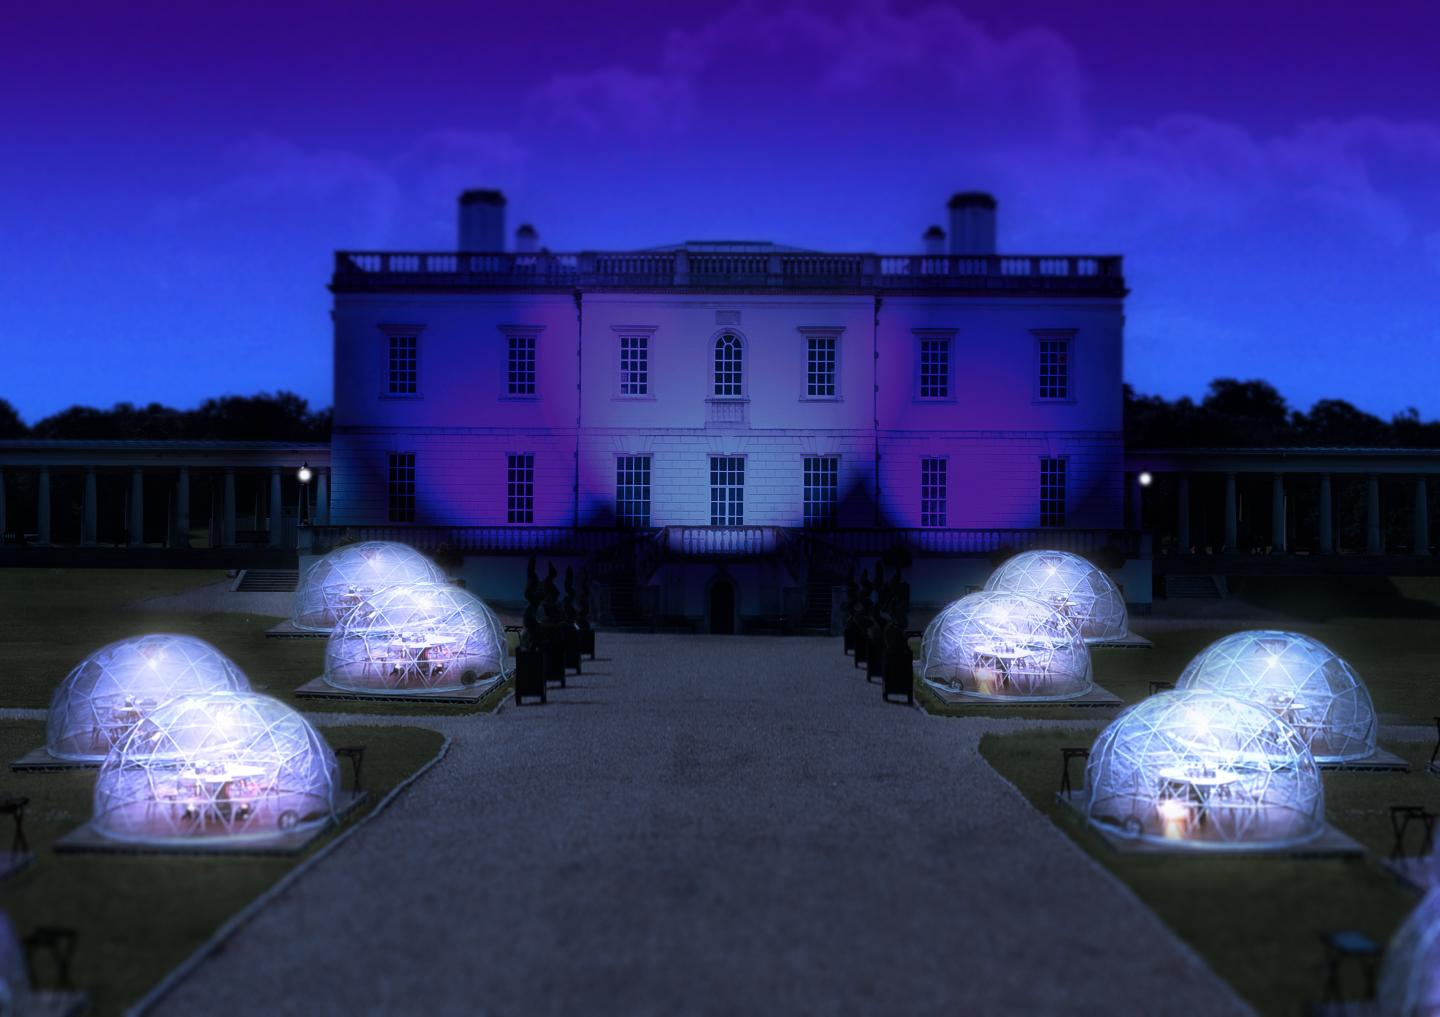 The Queen's House Greenwich at night, with a series of outdoor dining pods arranged on the front lawn